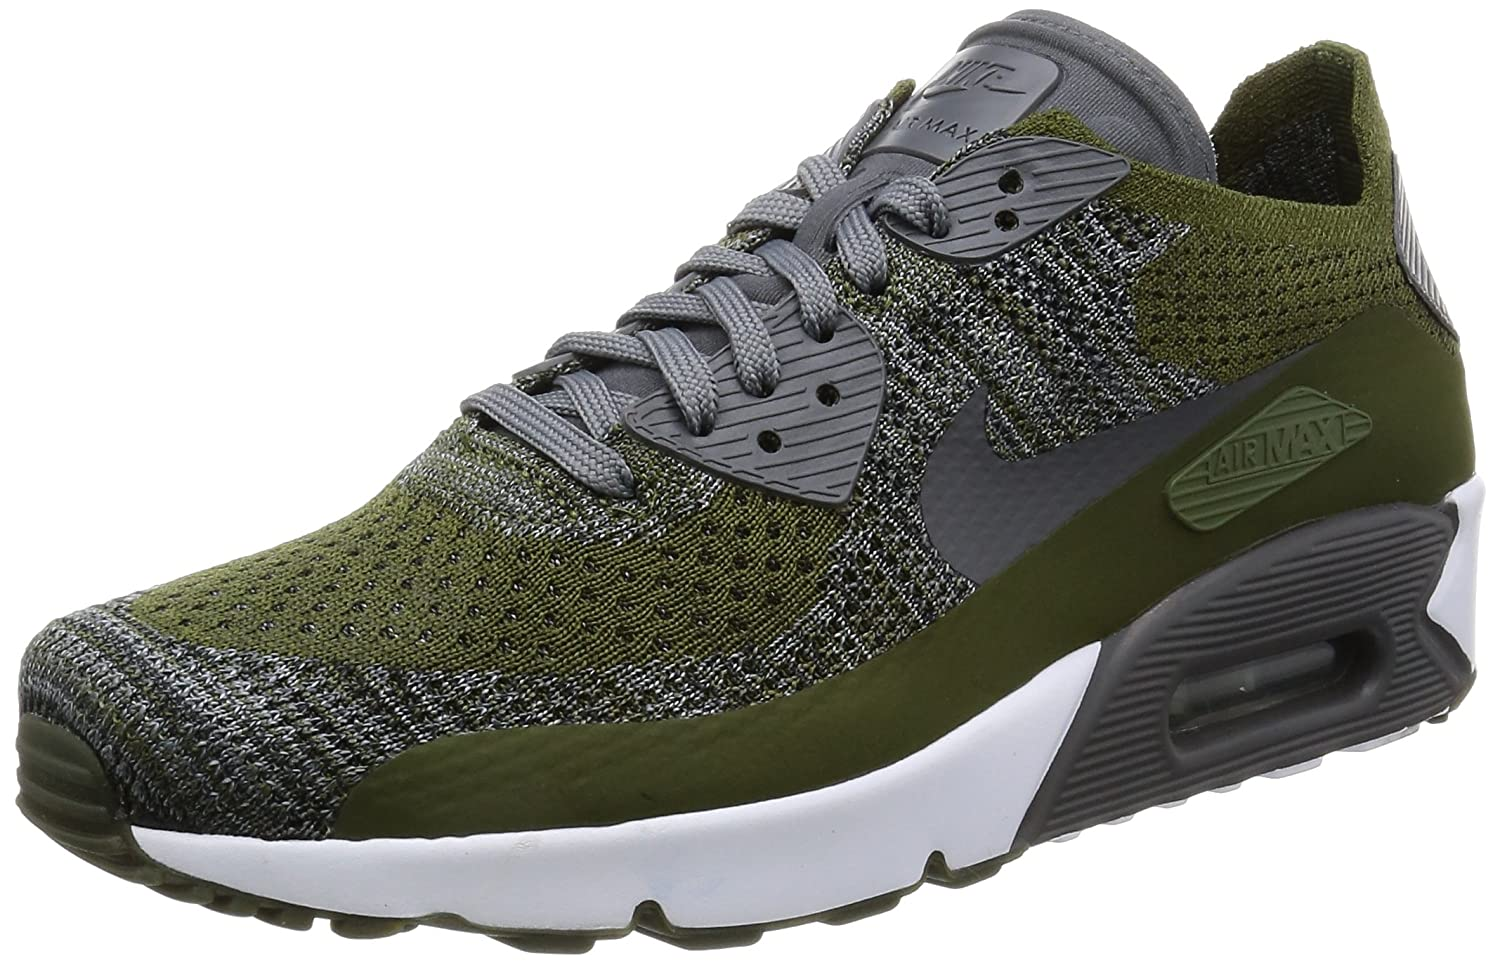 875f76846116 Mens Nike Air Max 90 Ultra 2.0 Flyknit  Amazon.co.uk  Shoes   Bags